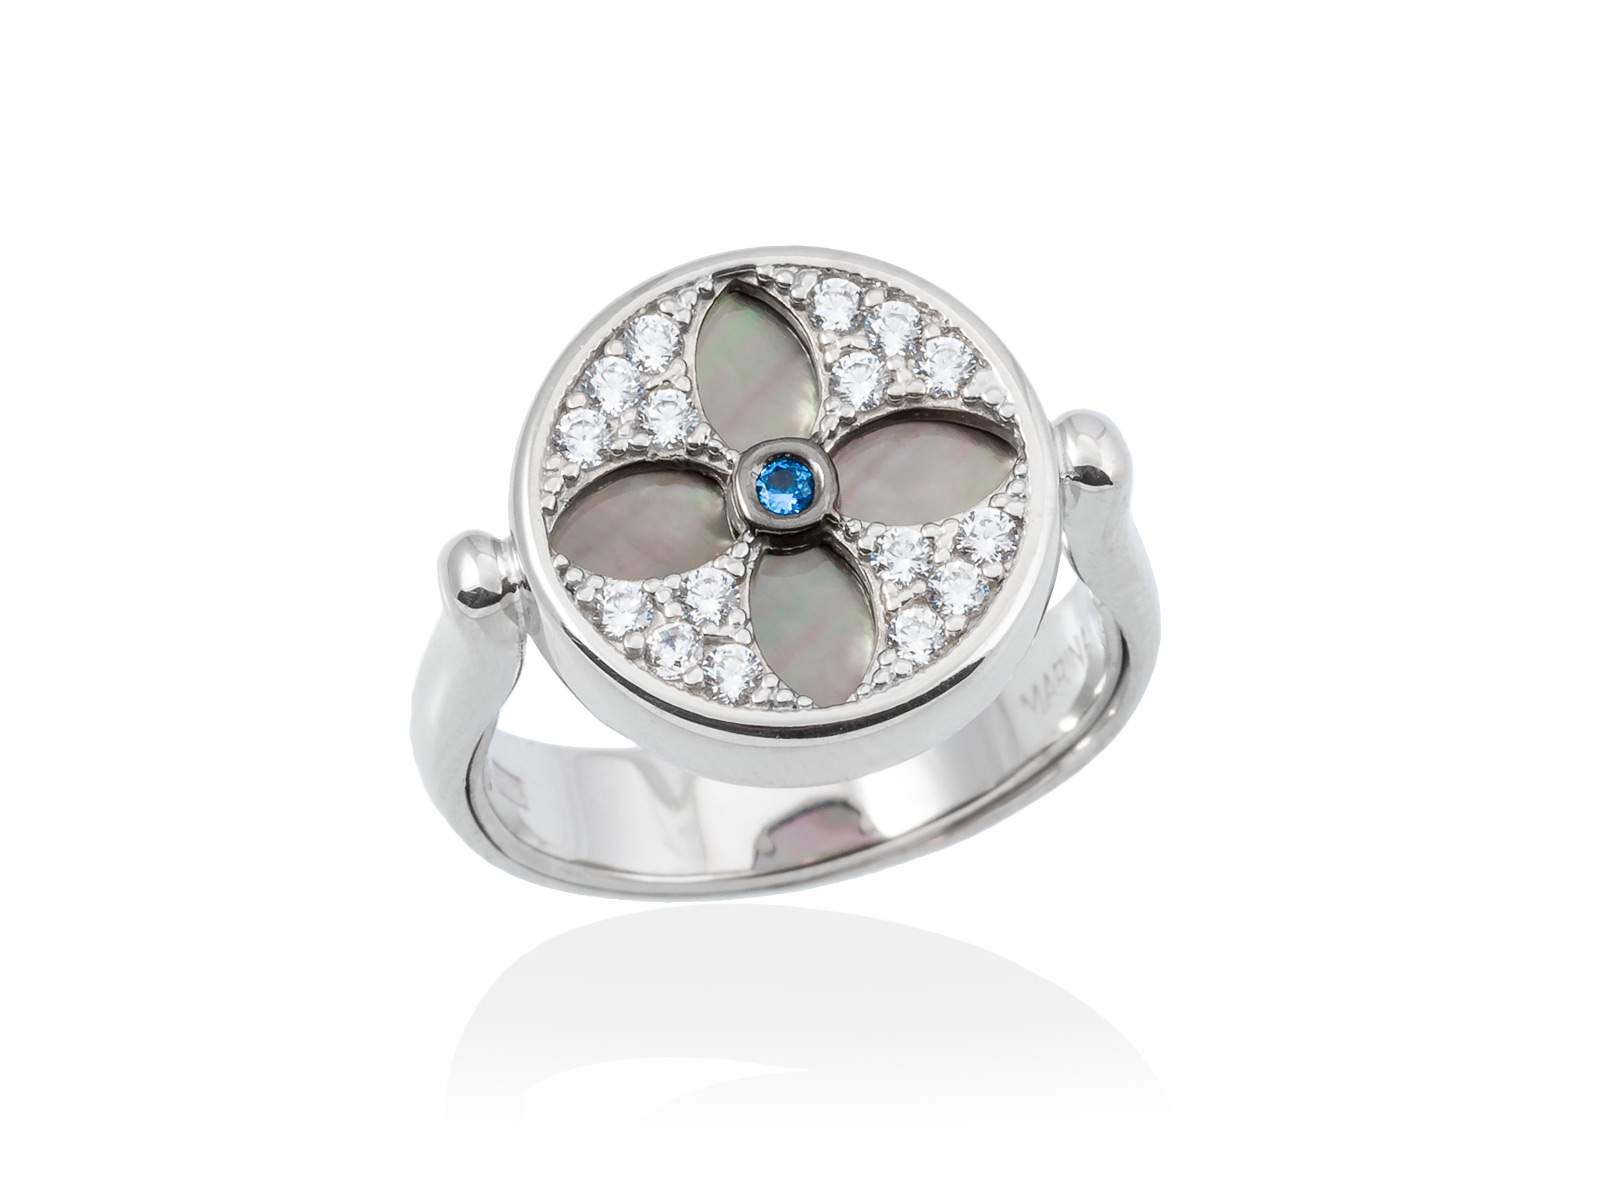 f329c4bfe673f Ring DUOMO Blue in silver